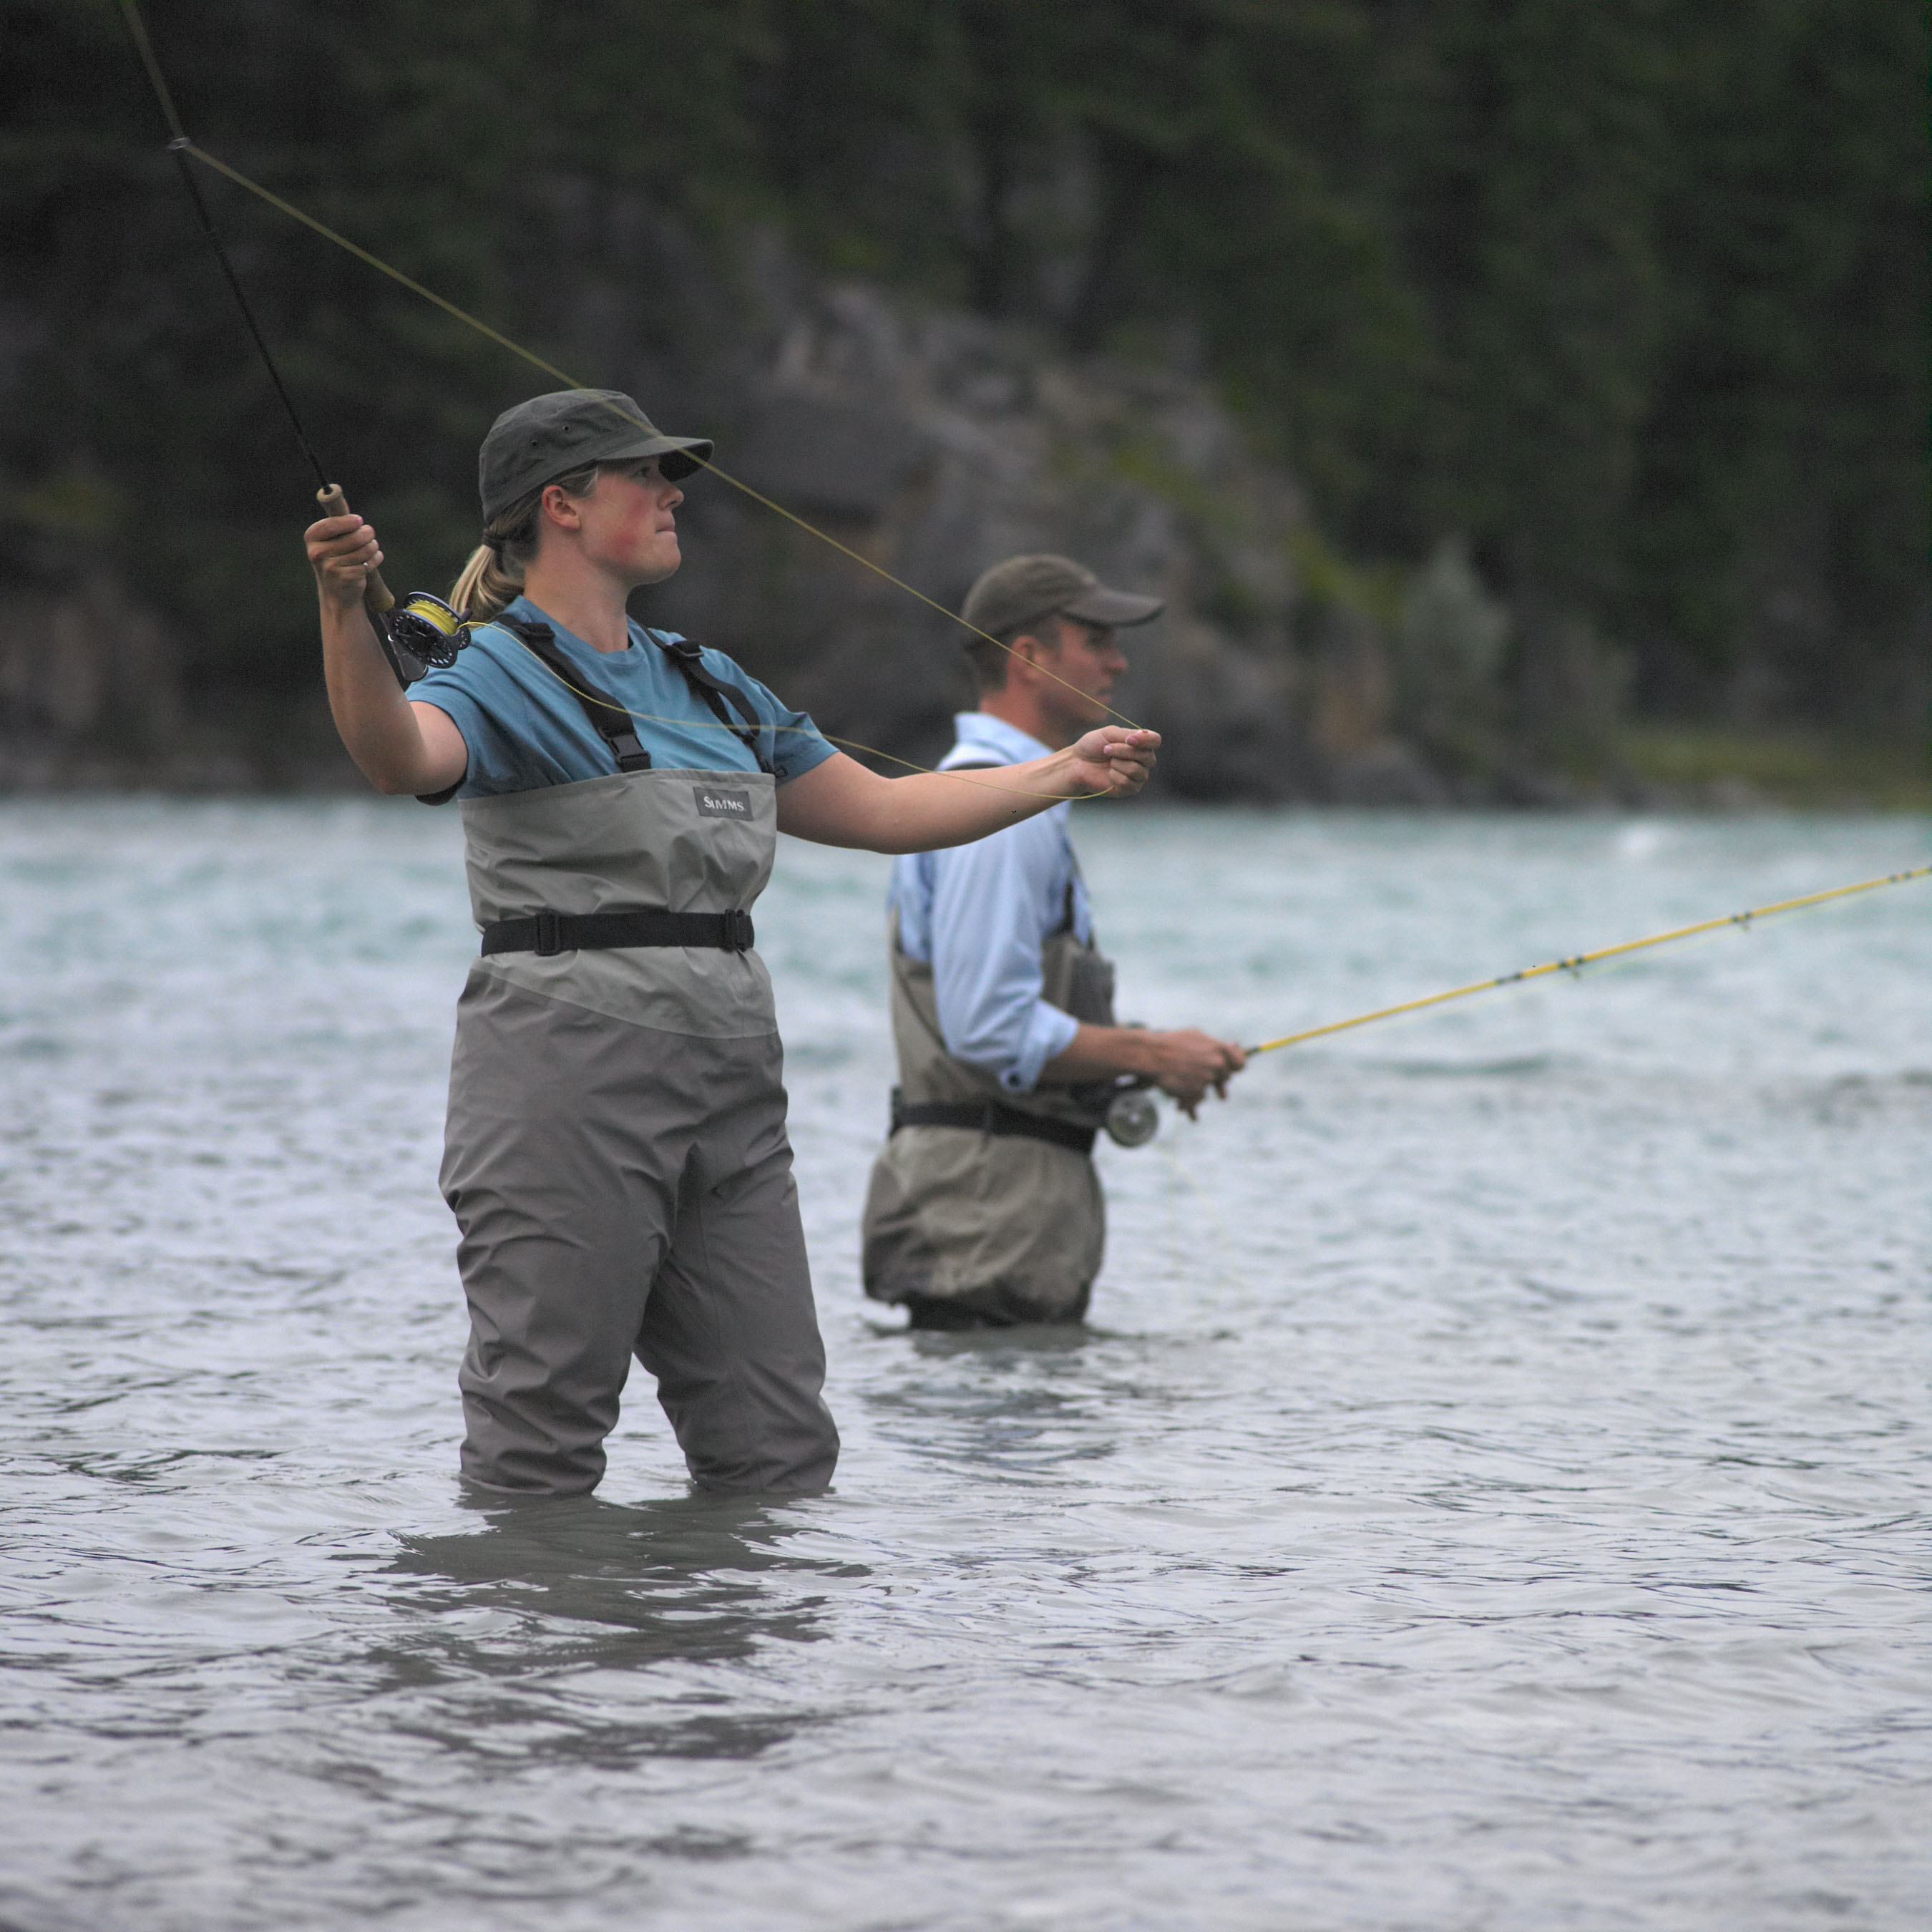 Fishing | Banff, AB - Official Website